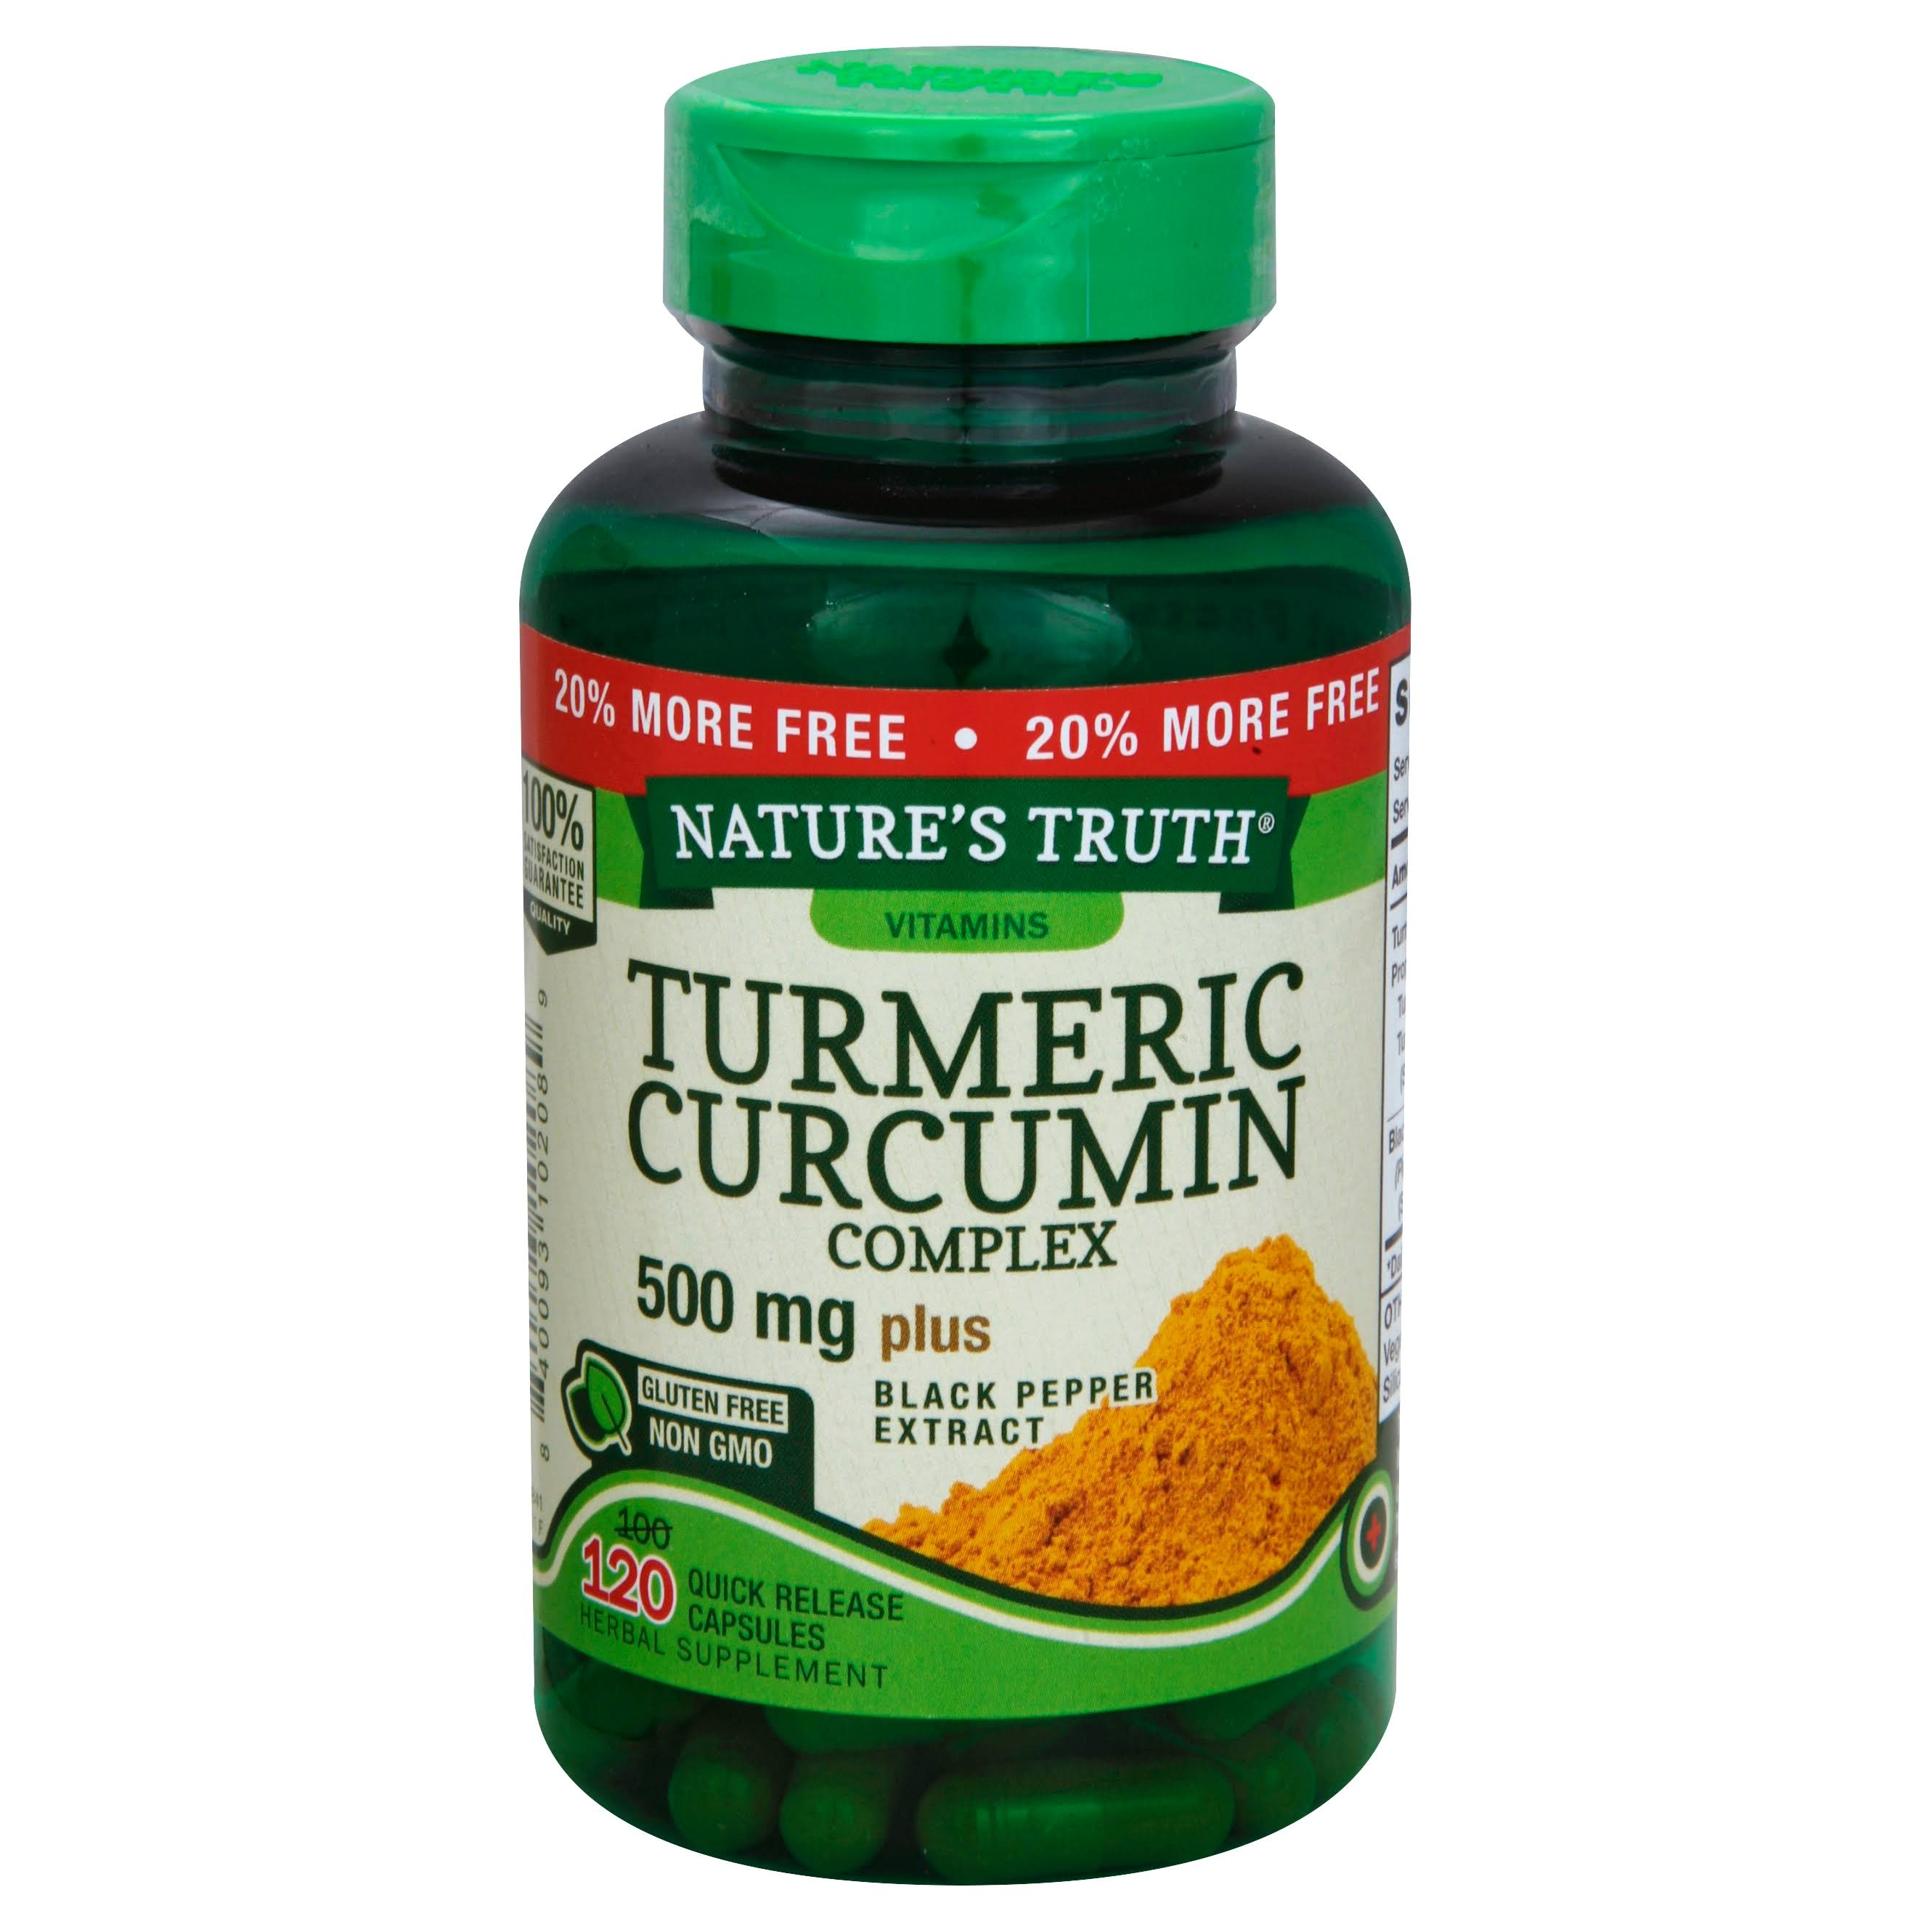 Nature's Truth Turmeric Curcumin Complex 500 mg Plus - Black Pepper Extract, 120ct